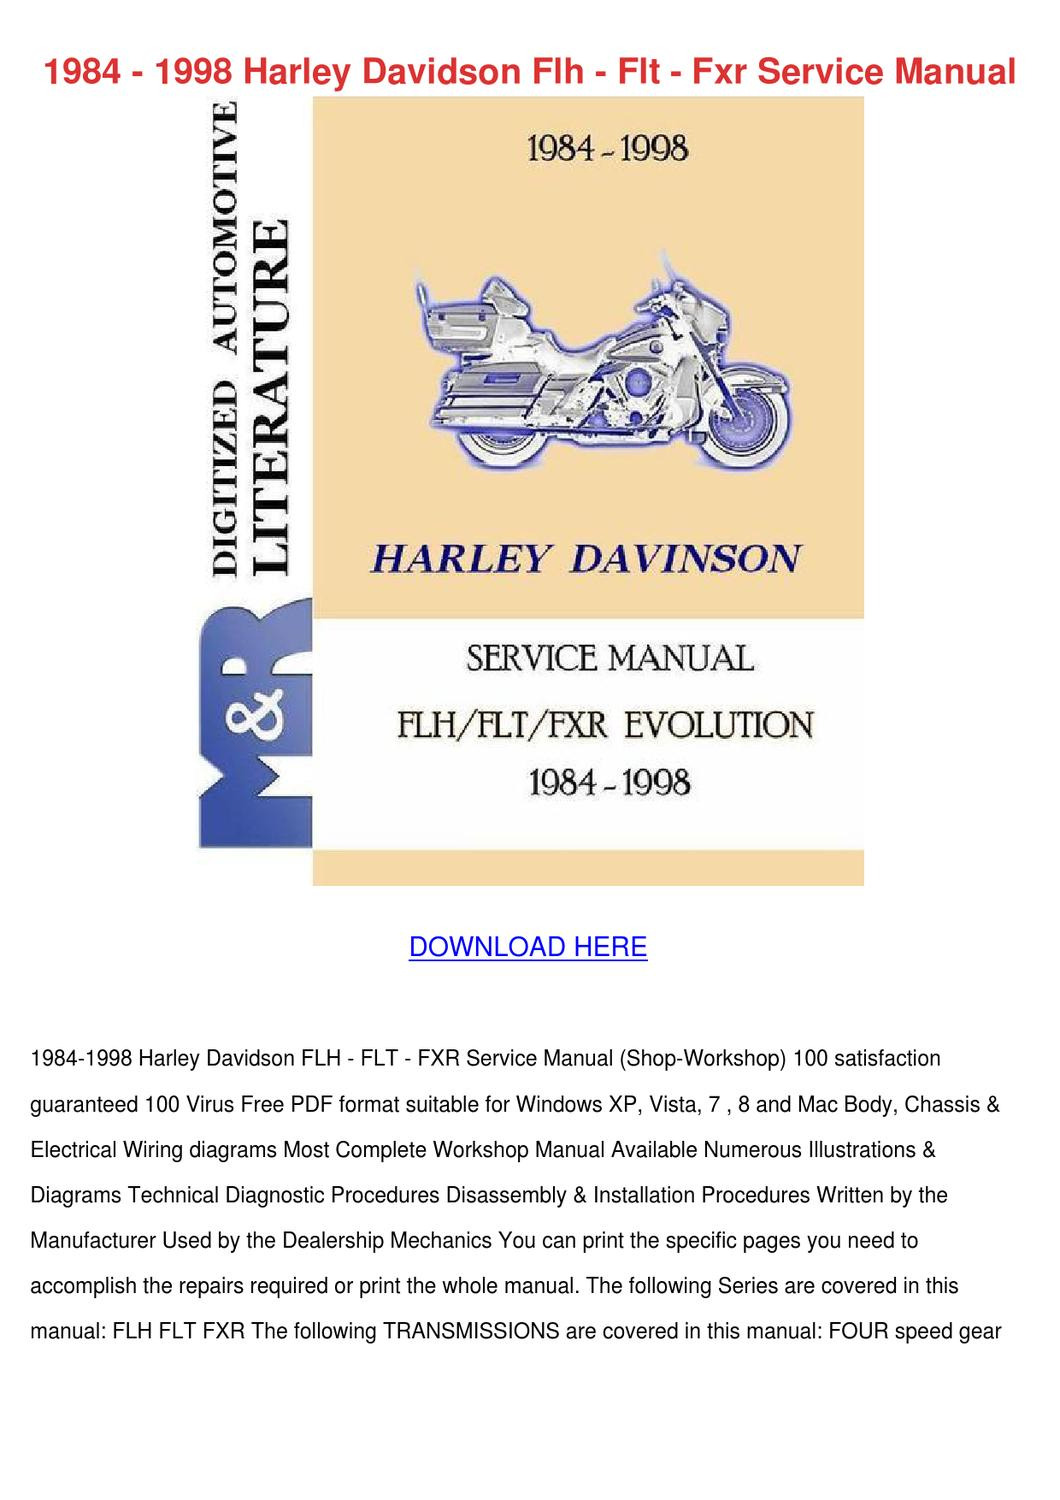 Harley Dyna Low Rider Wiring Diagram 95 | Wiring Liry on harley coil wiring motorcycle, harley wiring harness diagram, harley davidson coil cover, harley points coil wiring, harley davidson electrical diagram, harley ignition wiring, harley davidson starter diagram, harley wiring diagram wires, sportster chopper wiring diagram, harley dual plug wiring diagrams, 1999 harley softail wiring diagram, 1990 harley wiring diagram, simple harley wiring diagram, dyna 2000i ignition wiring diagram, 1999 sportster wiring diagram,